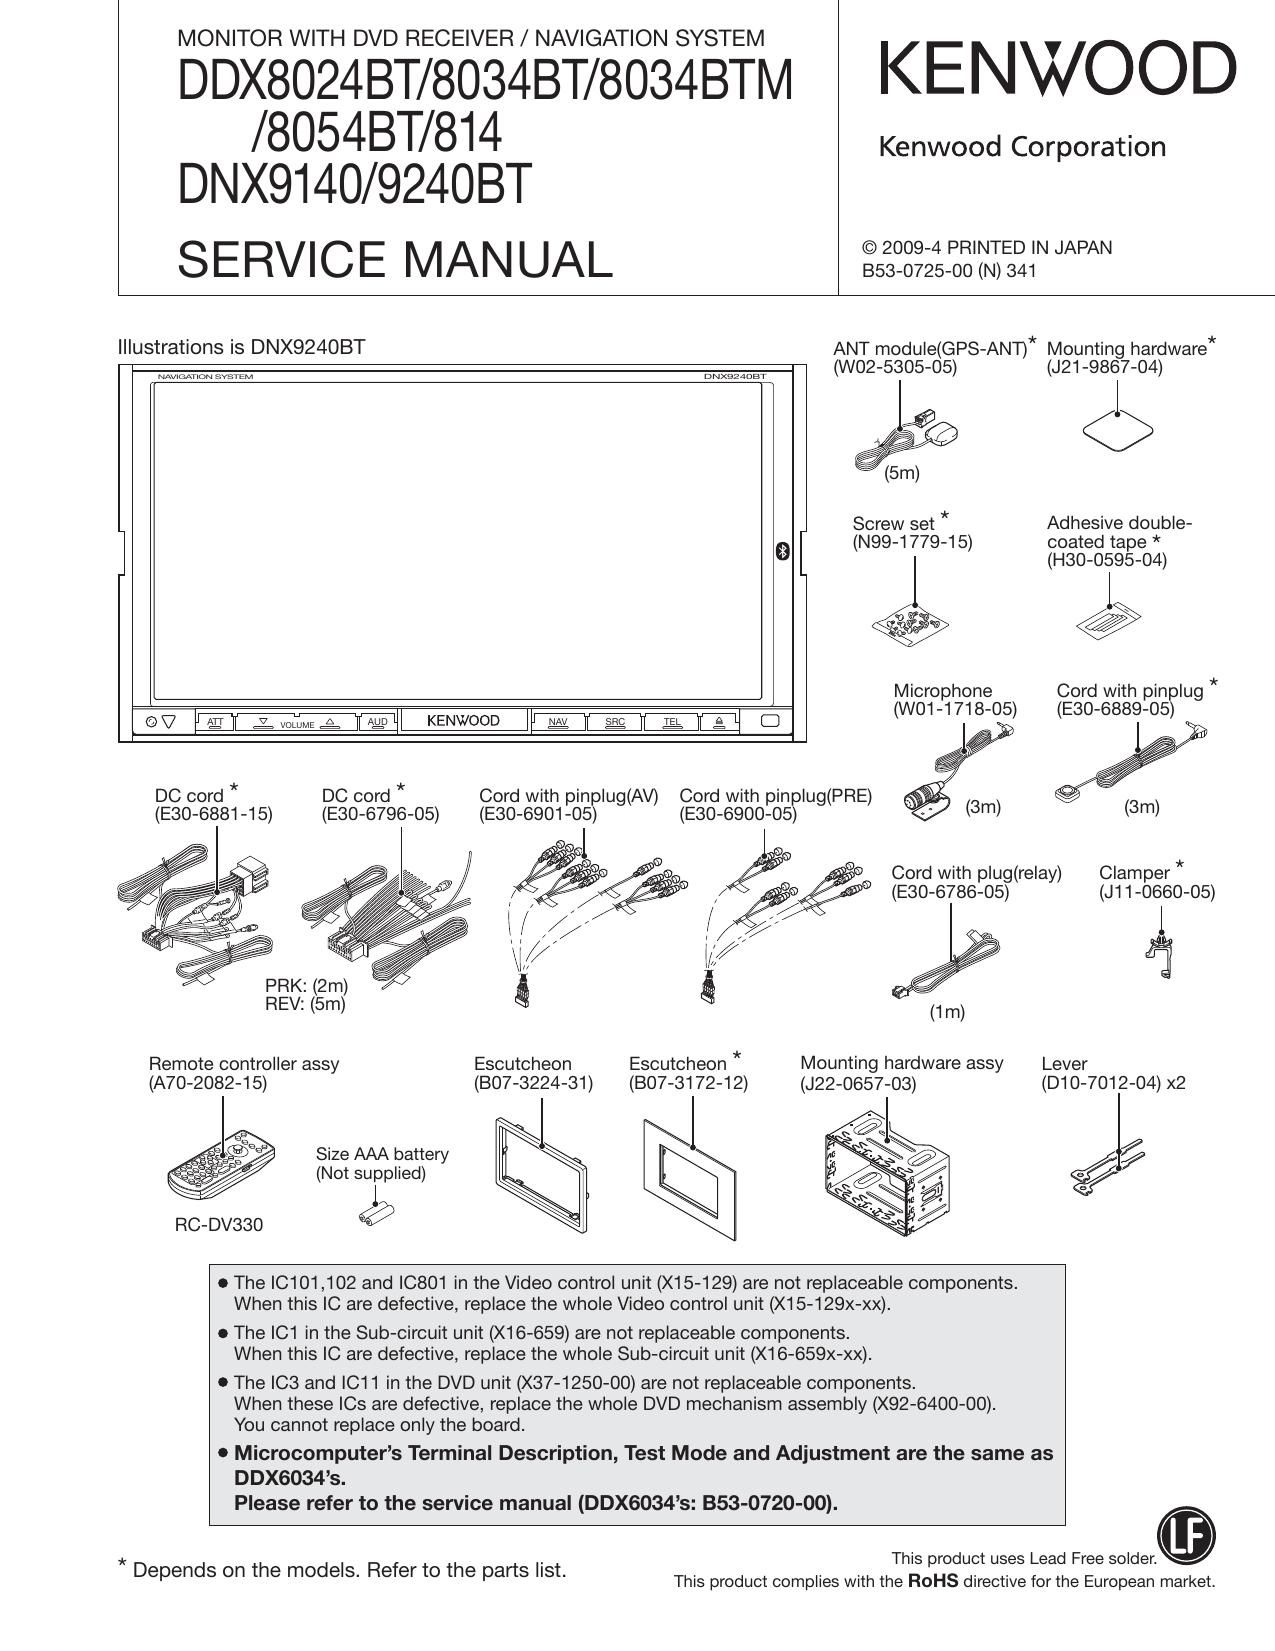 Kenwood Dnx 9140 Wiring Diagrams Dnx570hd Diagram Harness Service Manual On Deck Kac 720